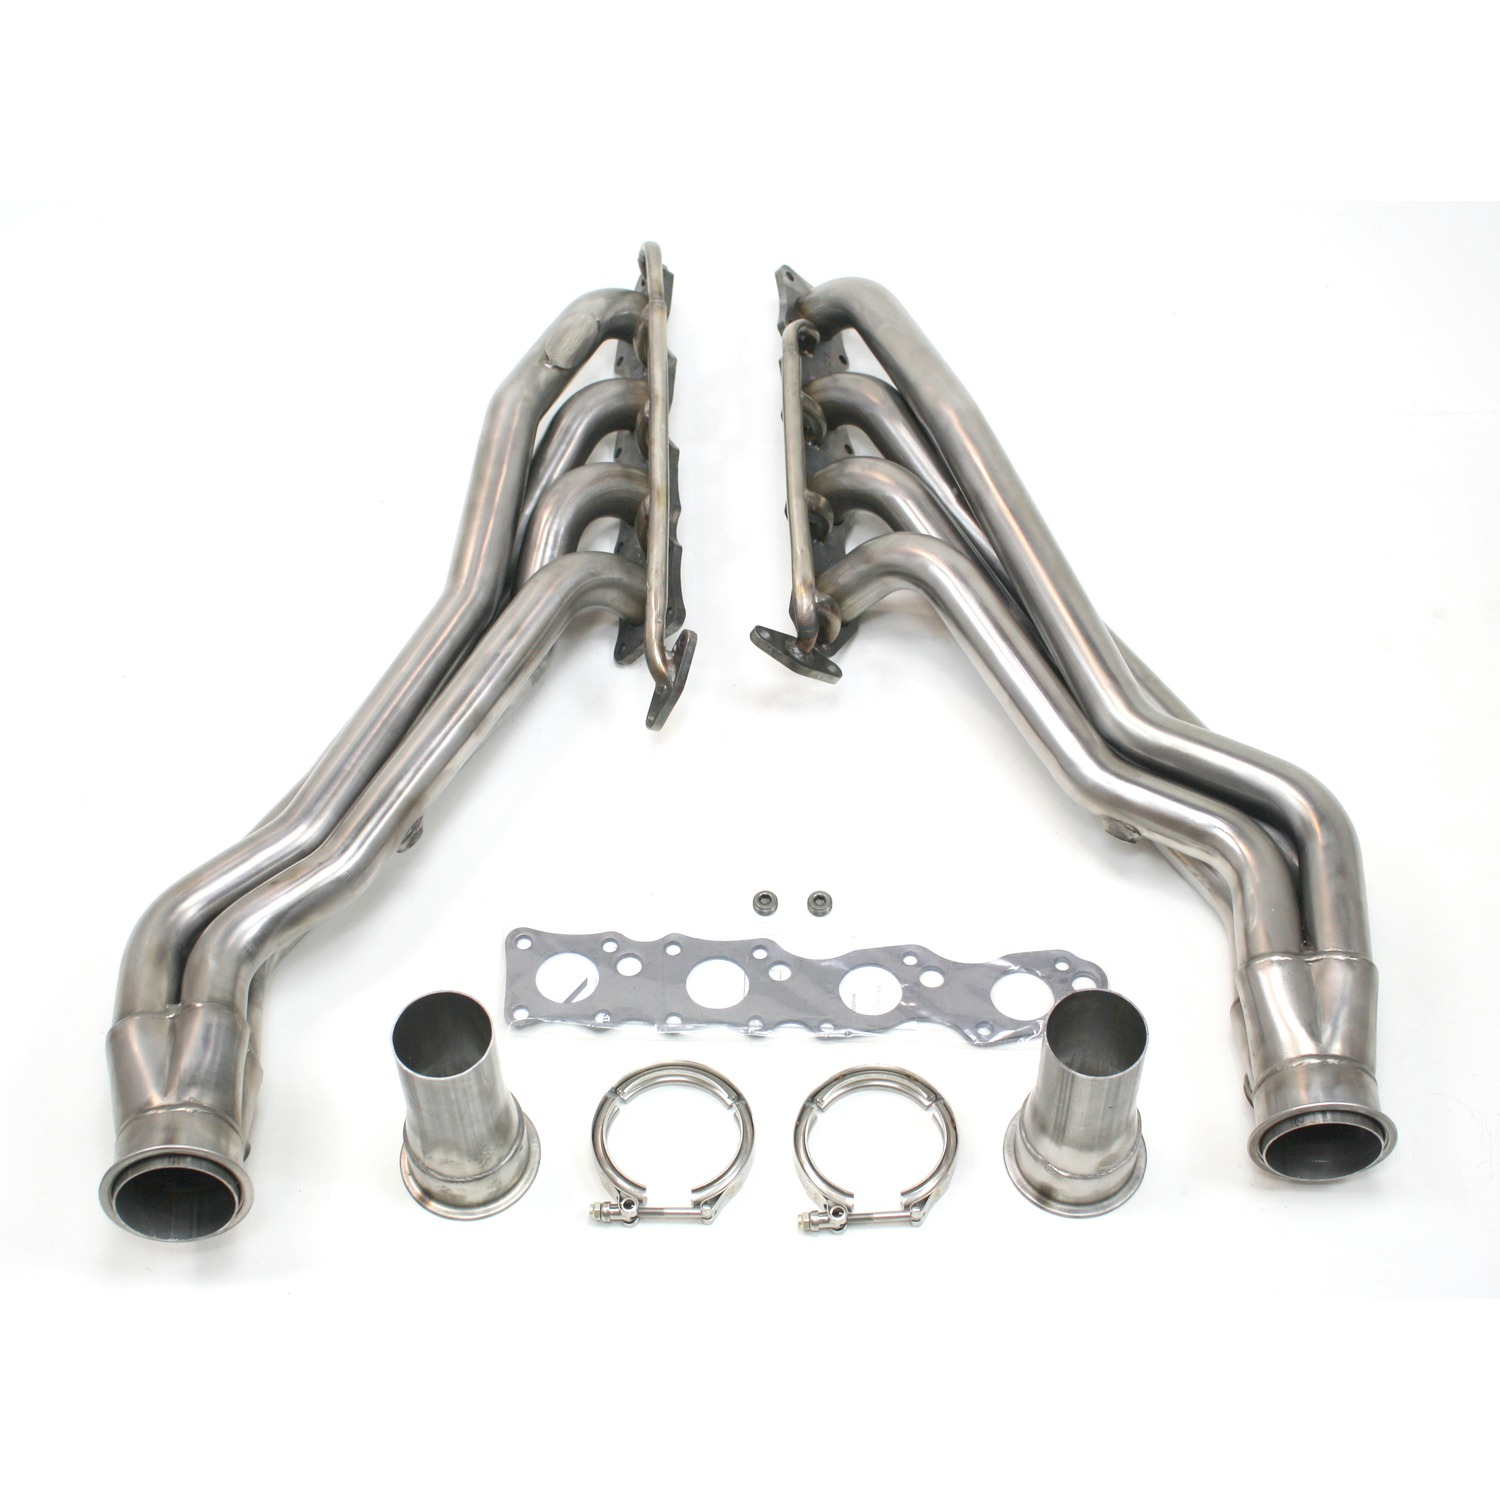 Jba S 1 3 4 Stainless Steel Long Tube Header For Toyota Tundra 5 7l Engine